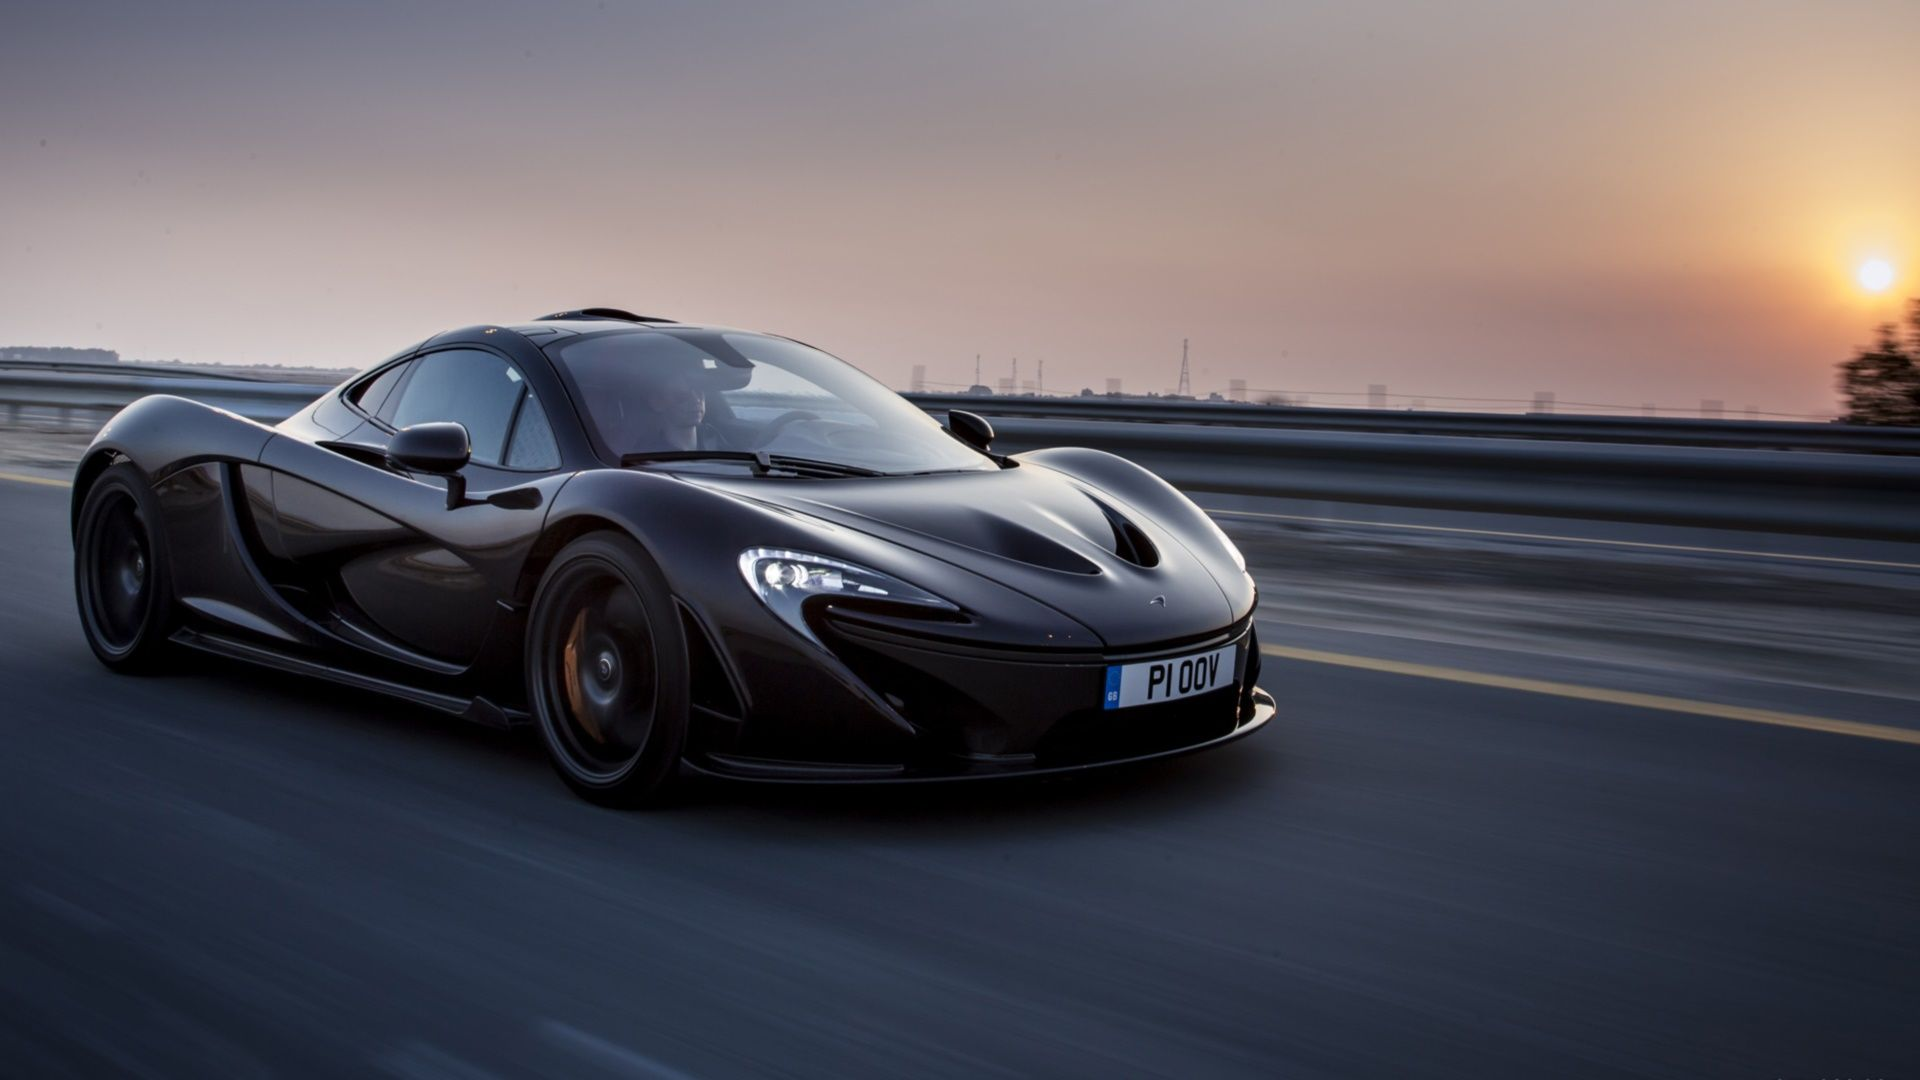 Mclaren Wallpaper Images Kad Cars Mclaren P1